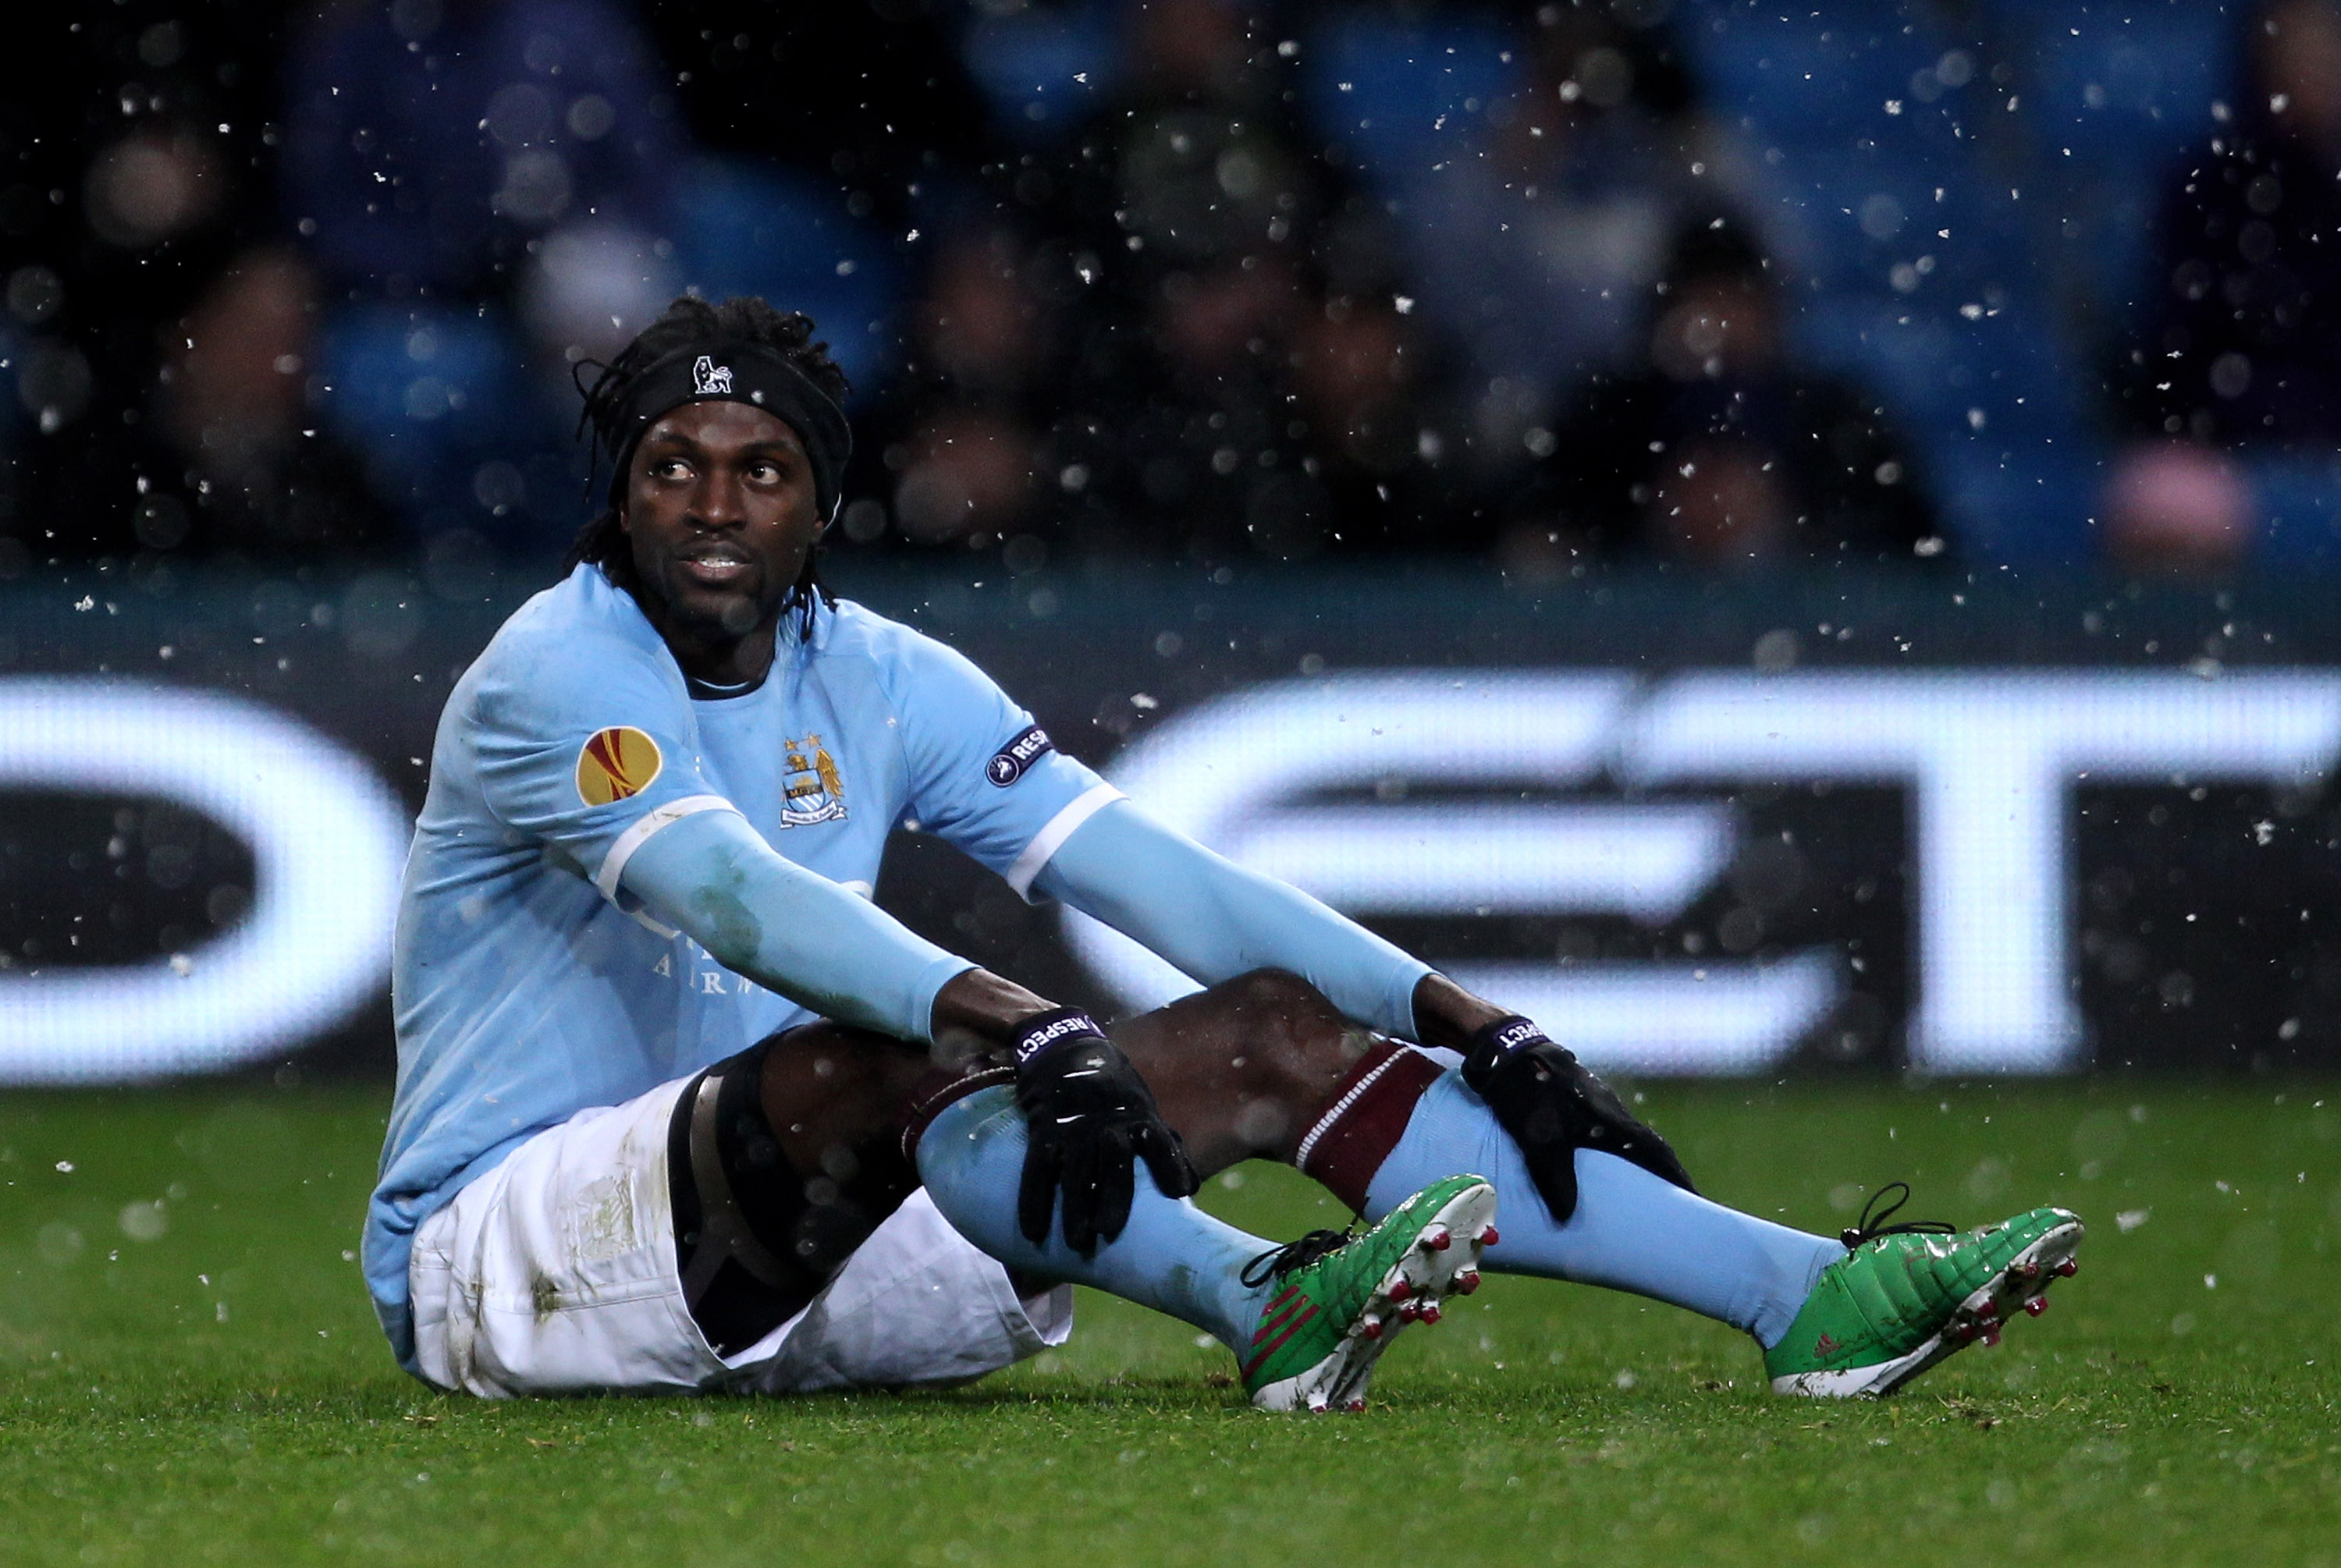 MANCHESTER, ENGLAND - DECEMBER 01:   Emmanuel Adebayor of Manchester City looks on during the UEFA Europa League Group A match between Manchester City and FC Salzburg at the City of Manchester Stadium on December 1, 2010 in Manchester, England. (Photo by